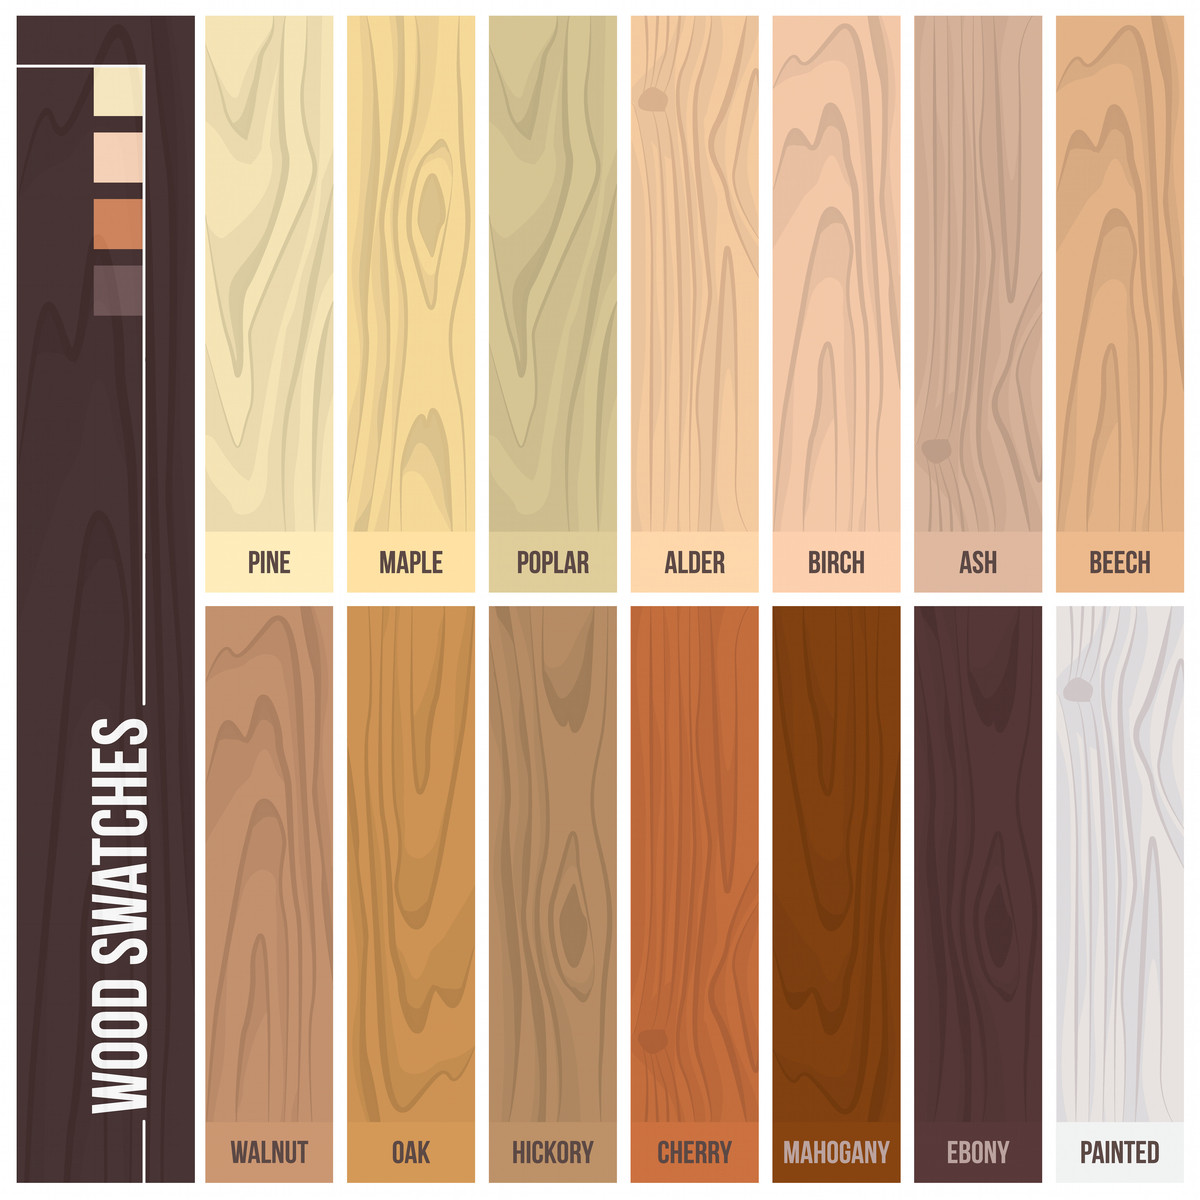 Bruce Birch Engineered Hardwood Flooring Of 12 Types Of Hardwood Flooring Species Styles Edging Dimensions Intended for Types Of Hardwood Flooring Illustrated Guide